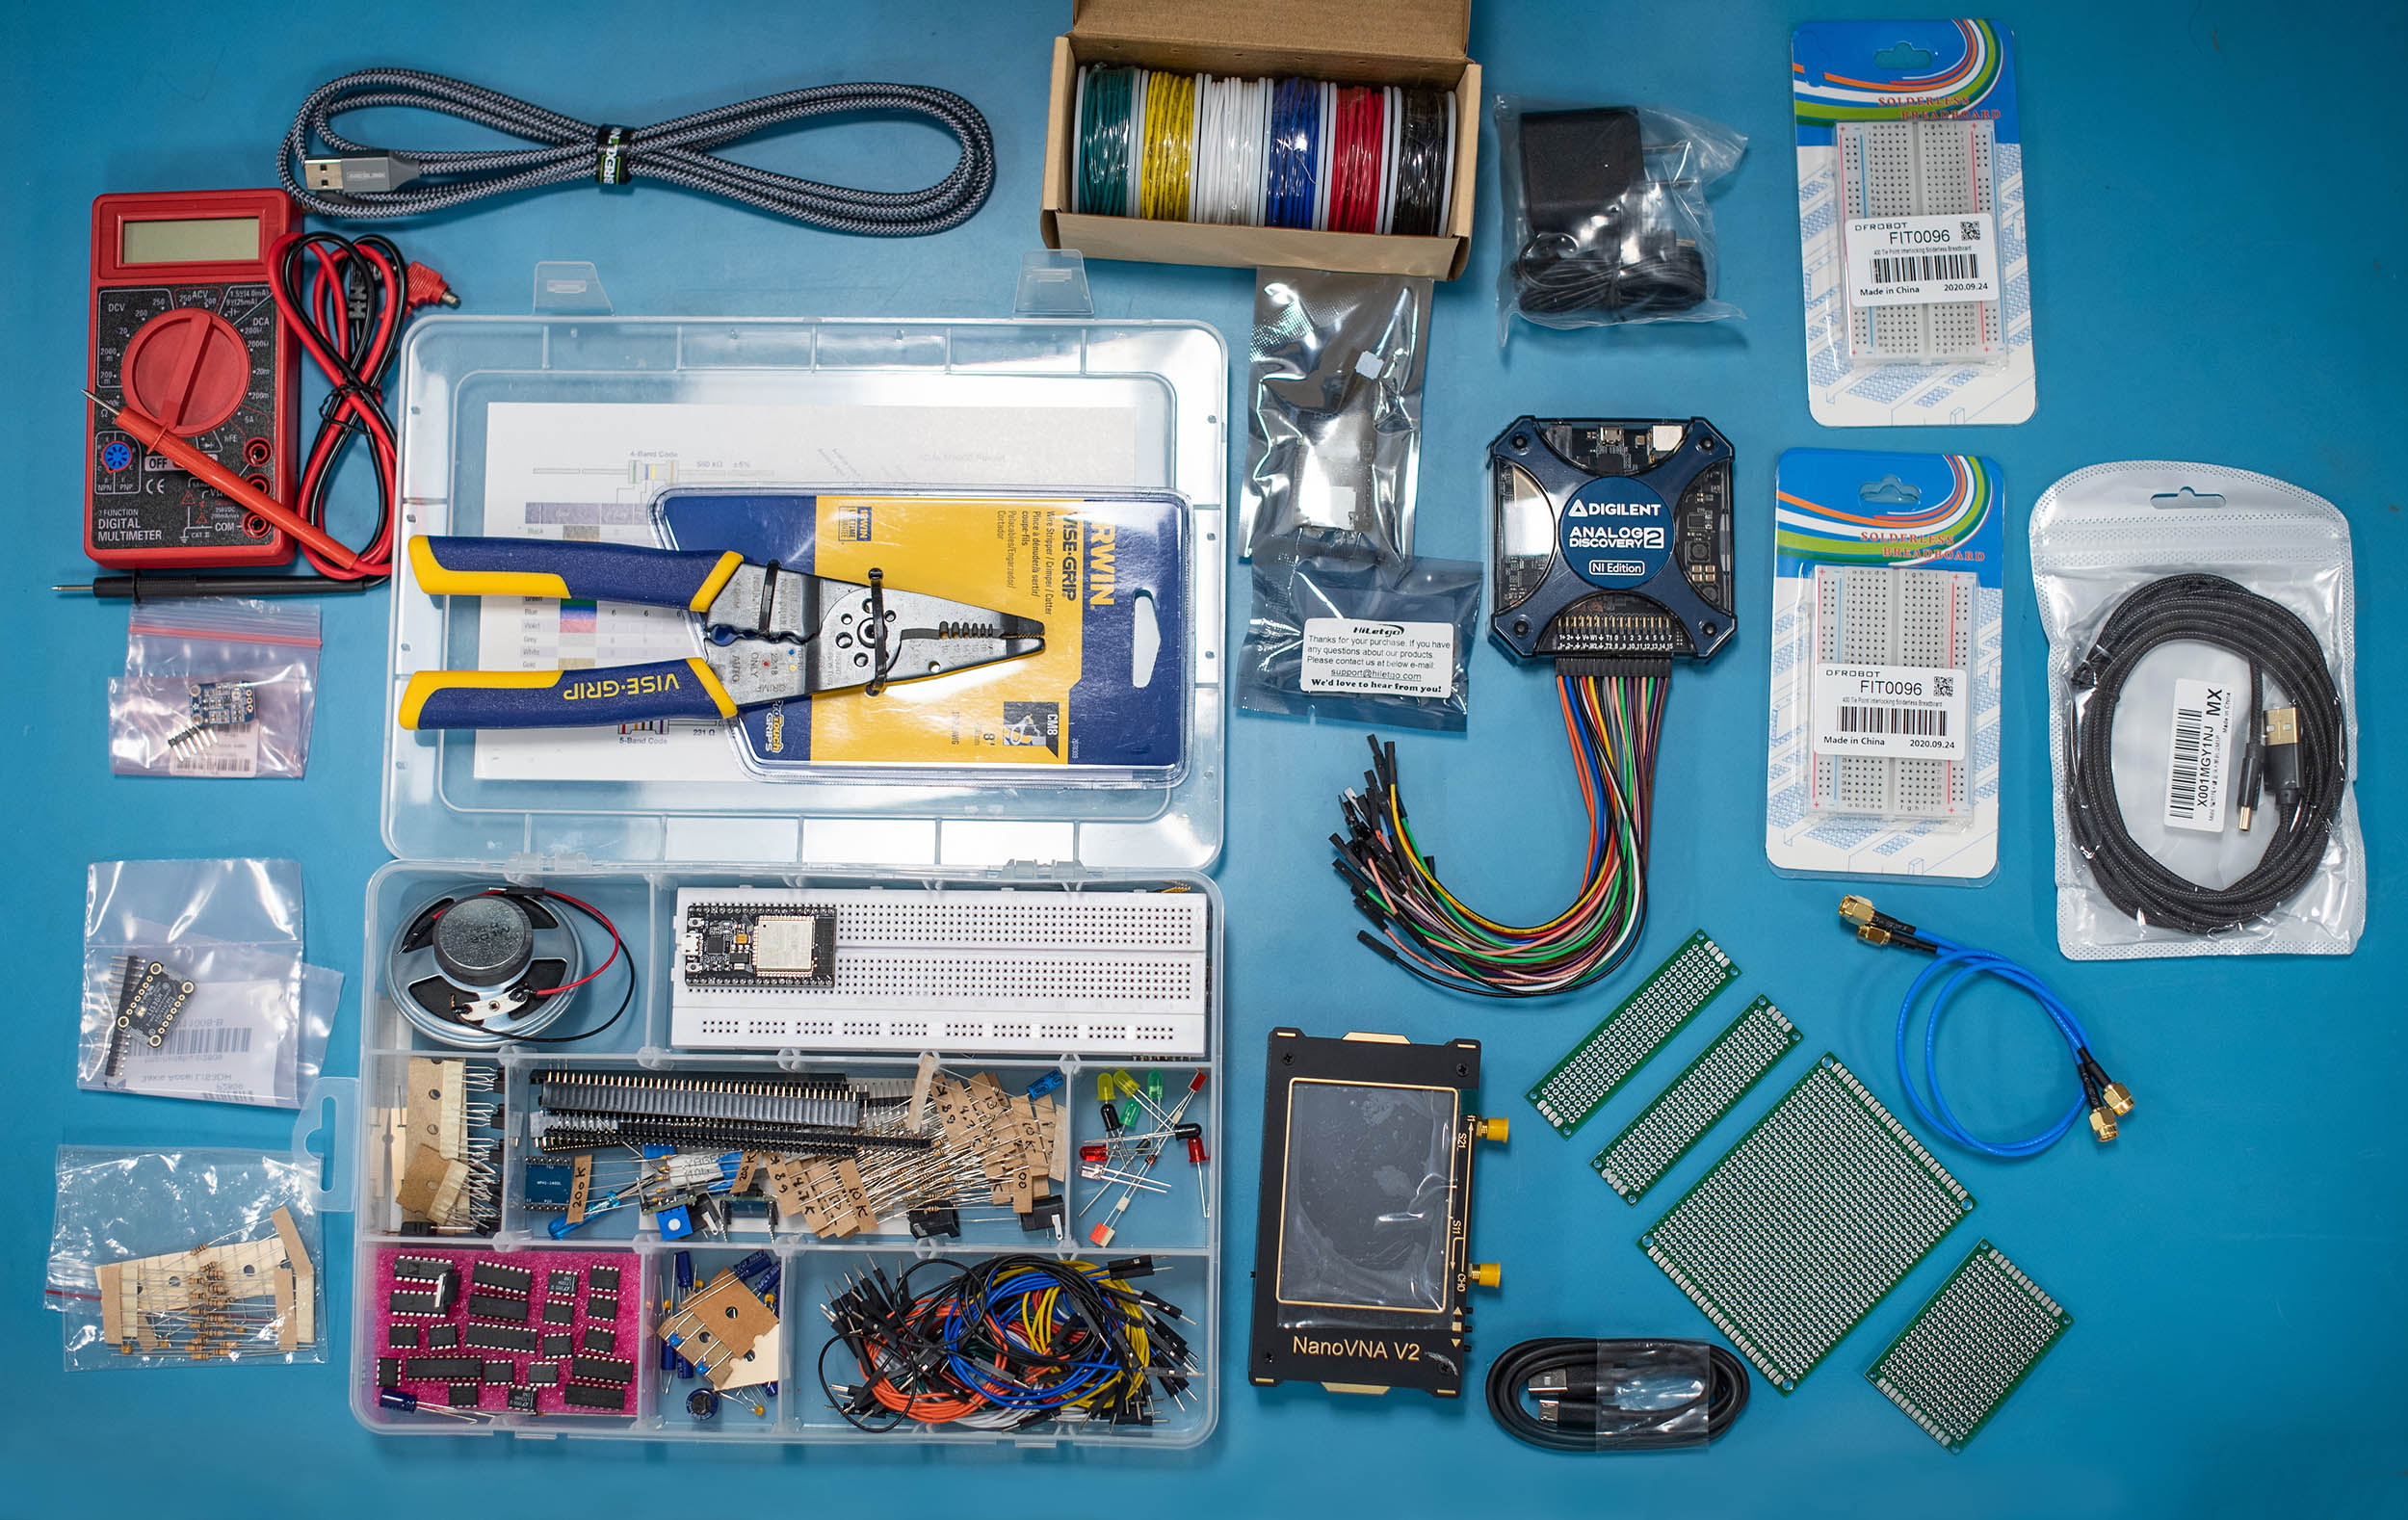 Lab kit from EECS 300